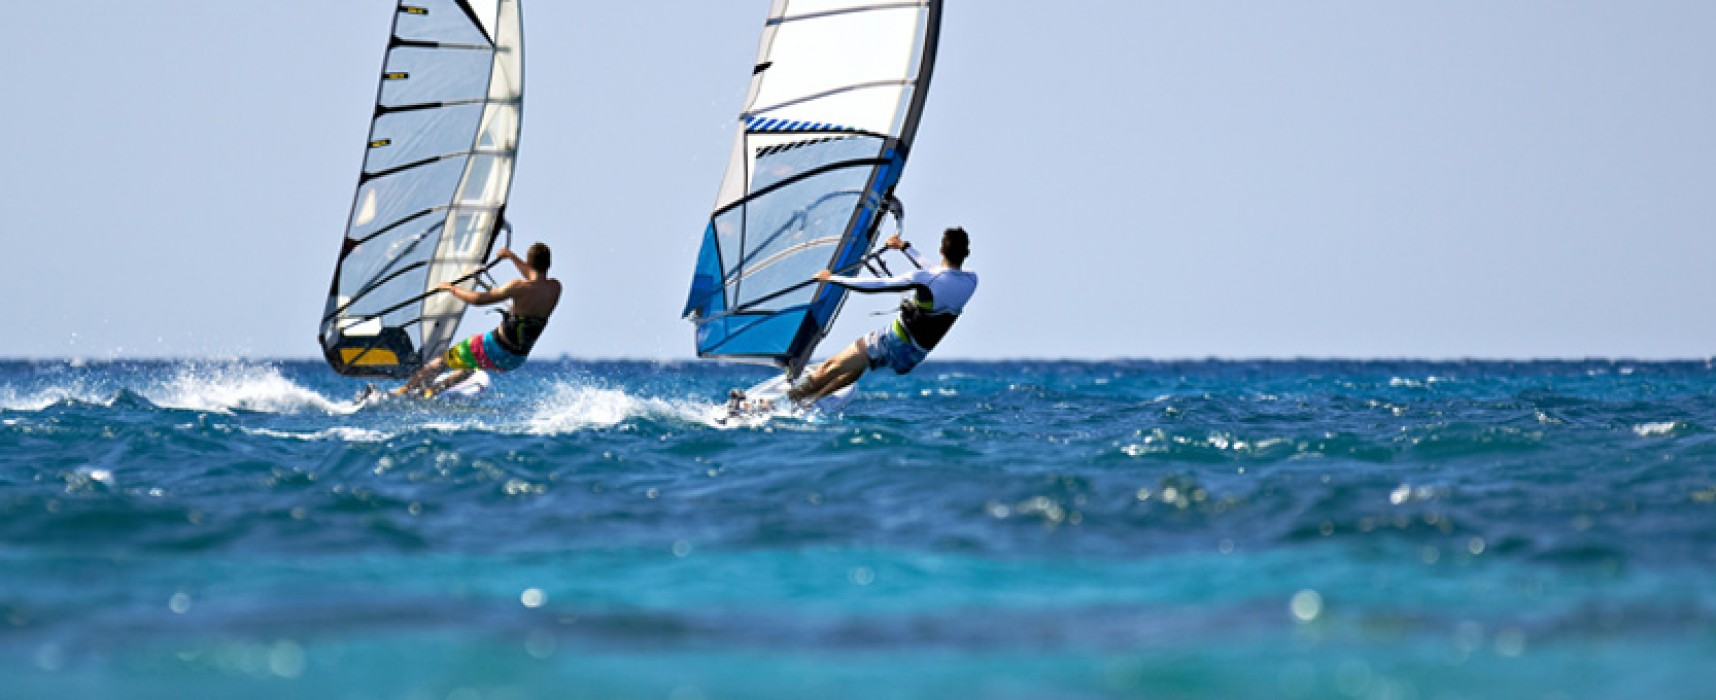 The Most Exciting Watersports You Can Try in the UK